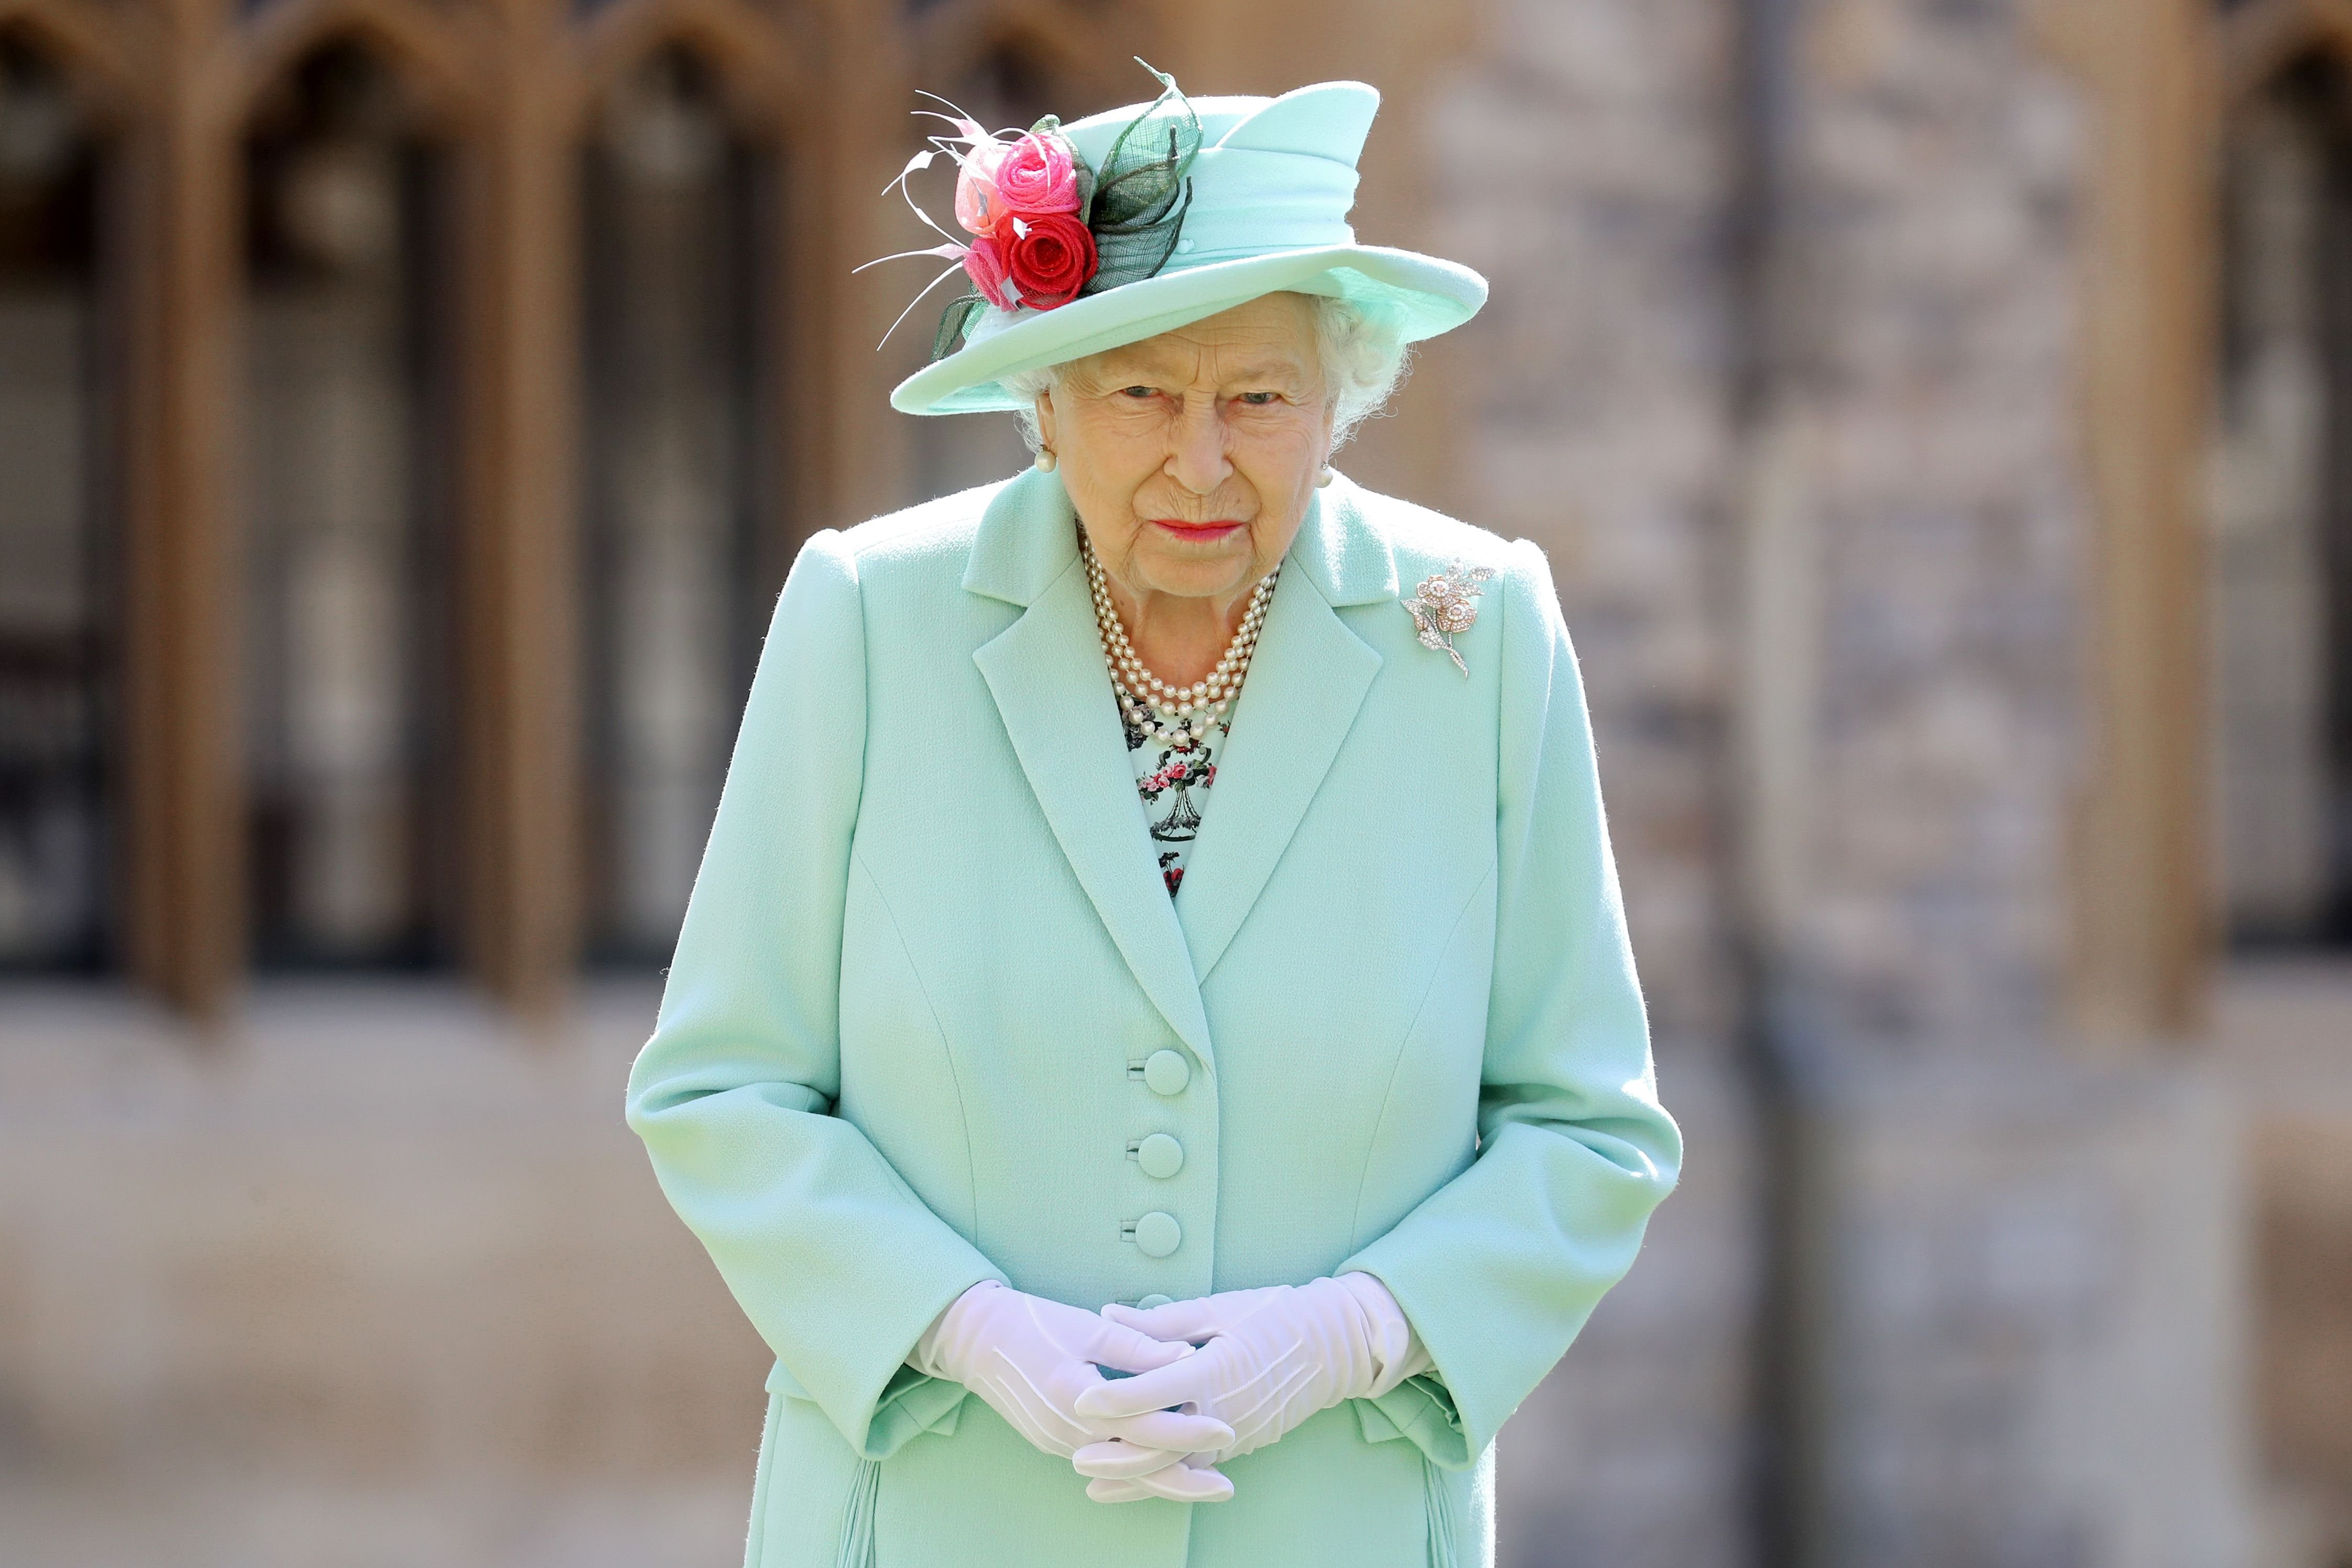 Queen Elizabeth II posed after awarding Captain Sir Thomas Moore with the insignia of Knight Bachelor at Windsor Castle on July 17, 2020 | Photo: Getty Images